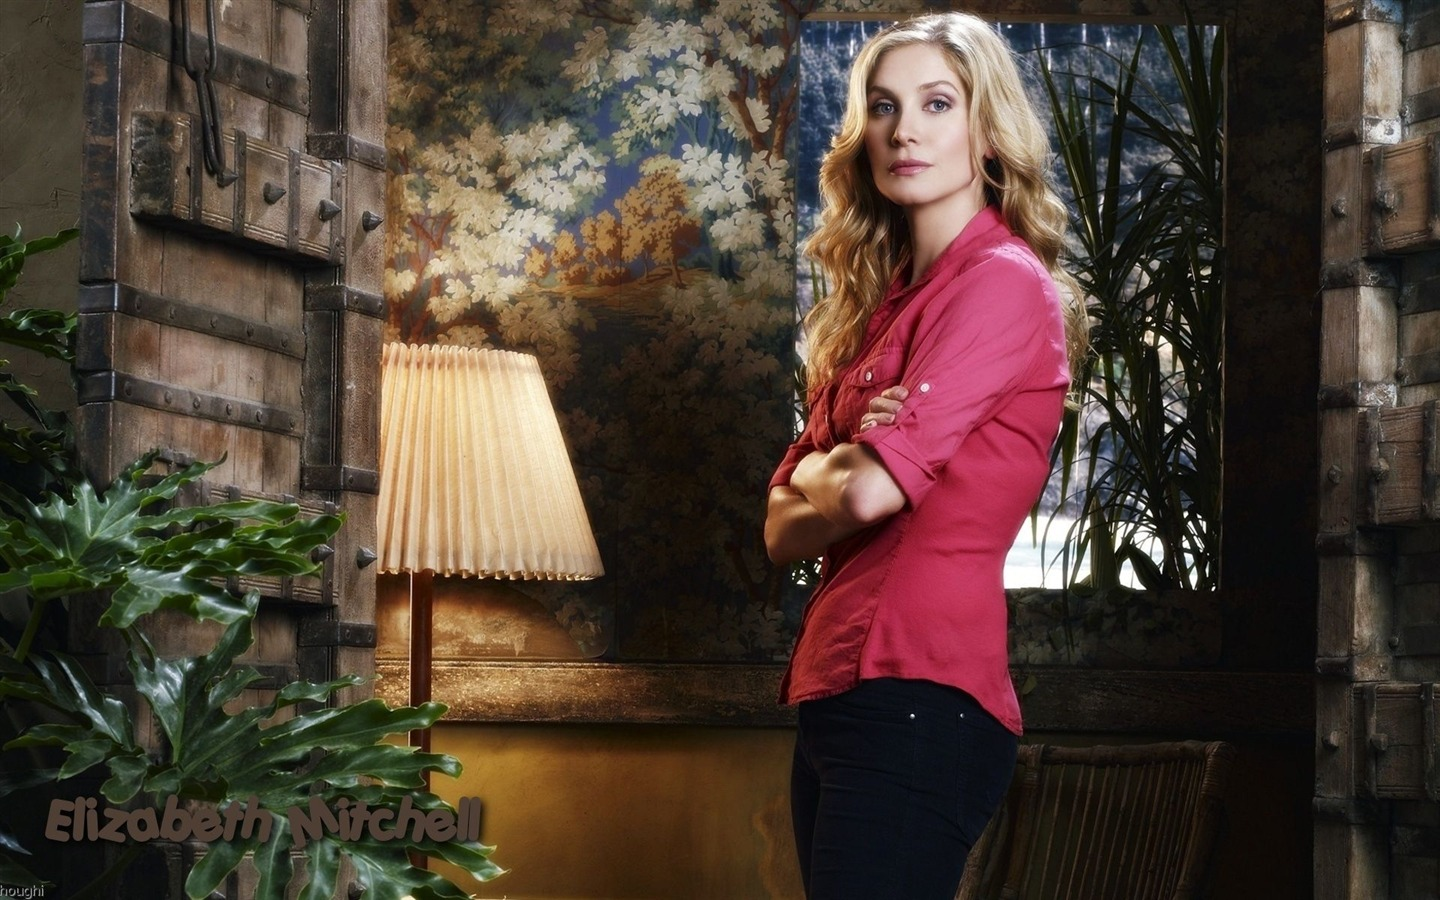 Elizabeth Mitchell #009 - 1440x900 Wallpapers Pictures Photos Images